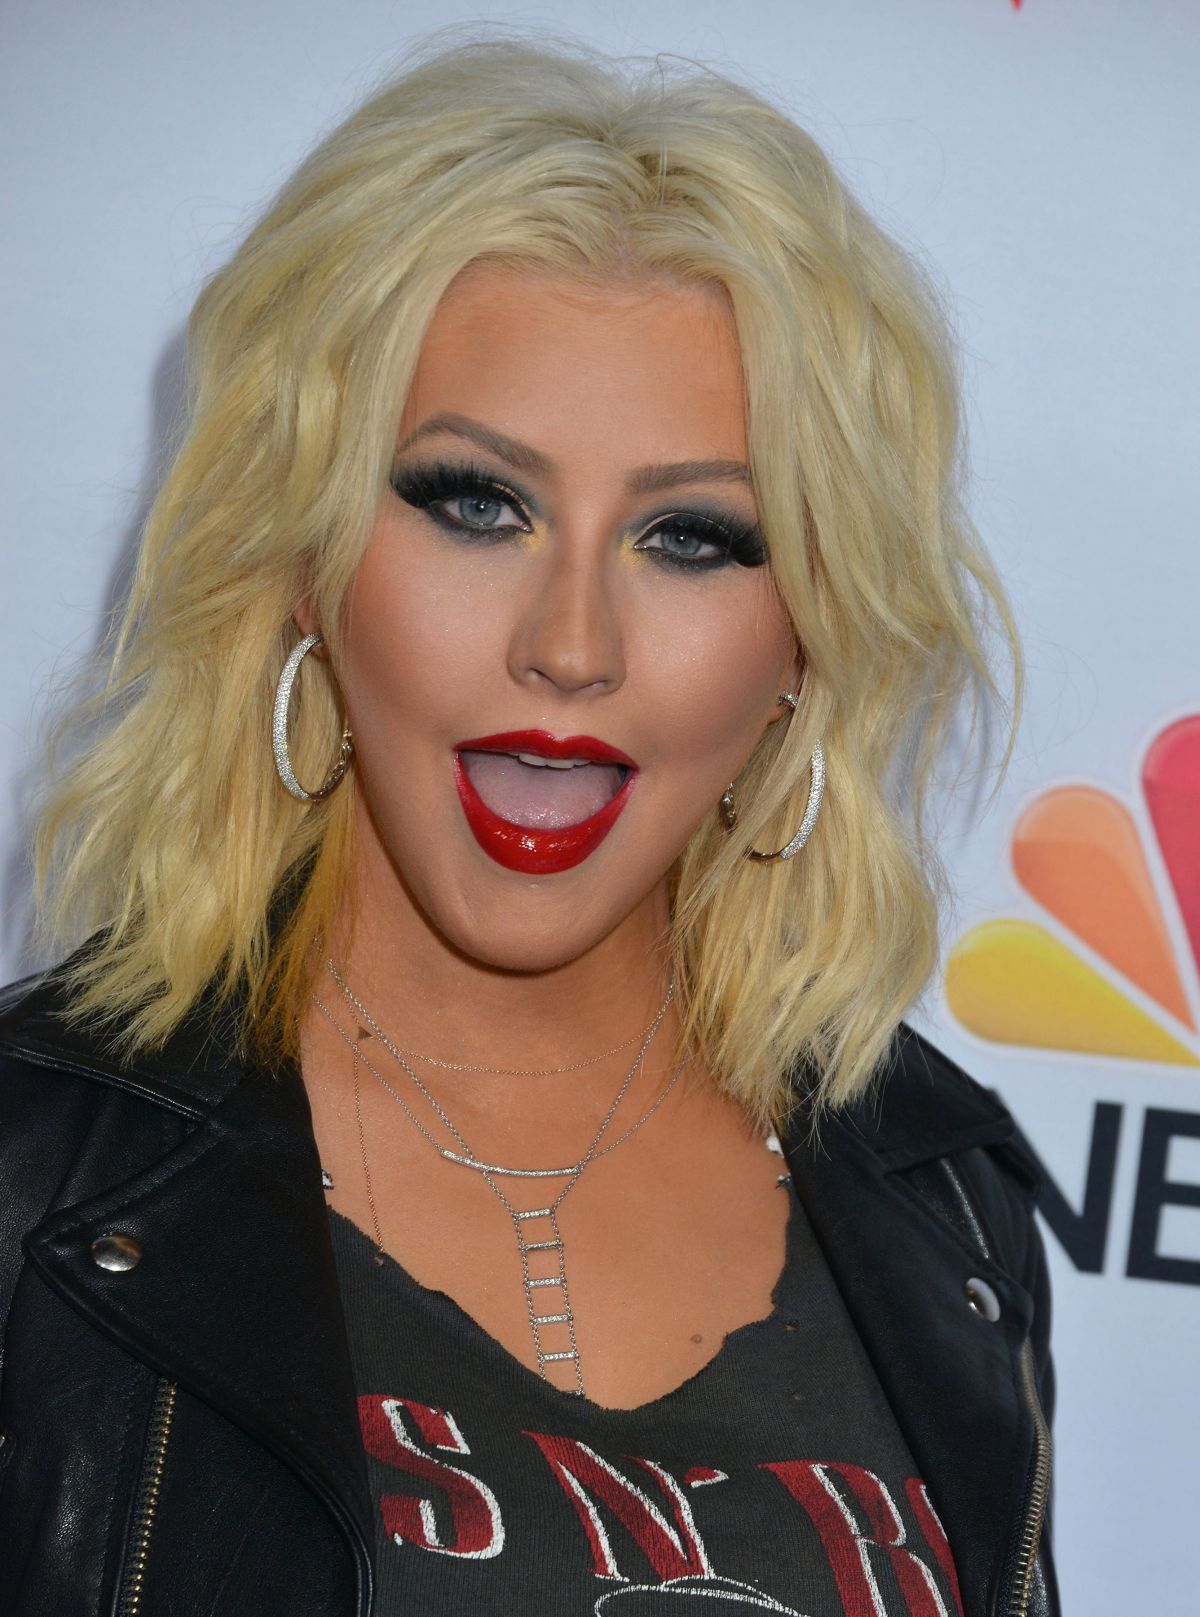 CHRISTINA AGUILERA at The Voice, Season 8 Red Carpet Event ... Christina Aguilera